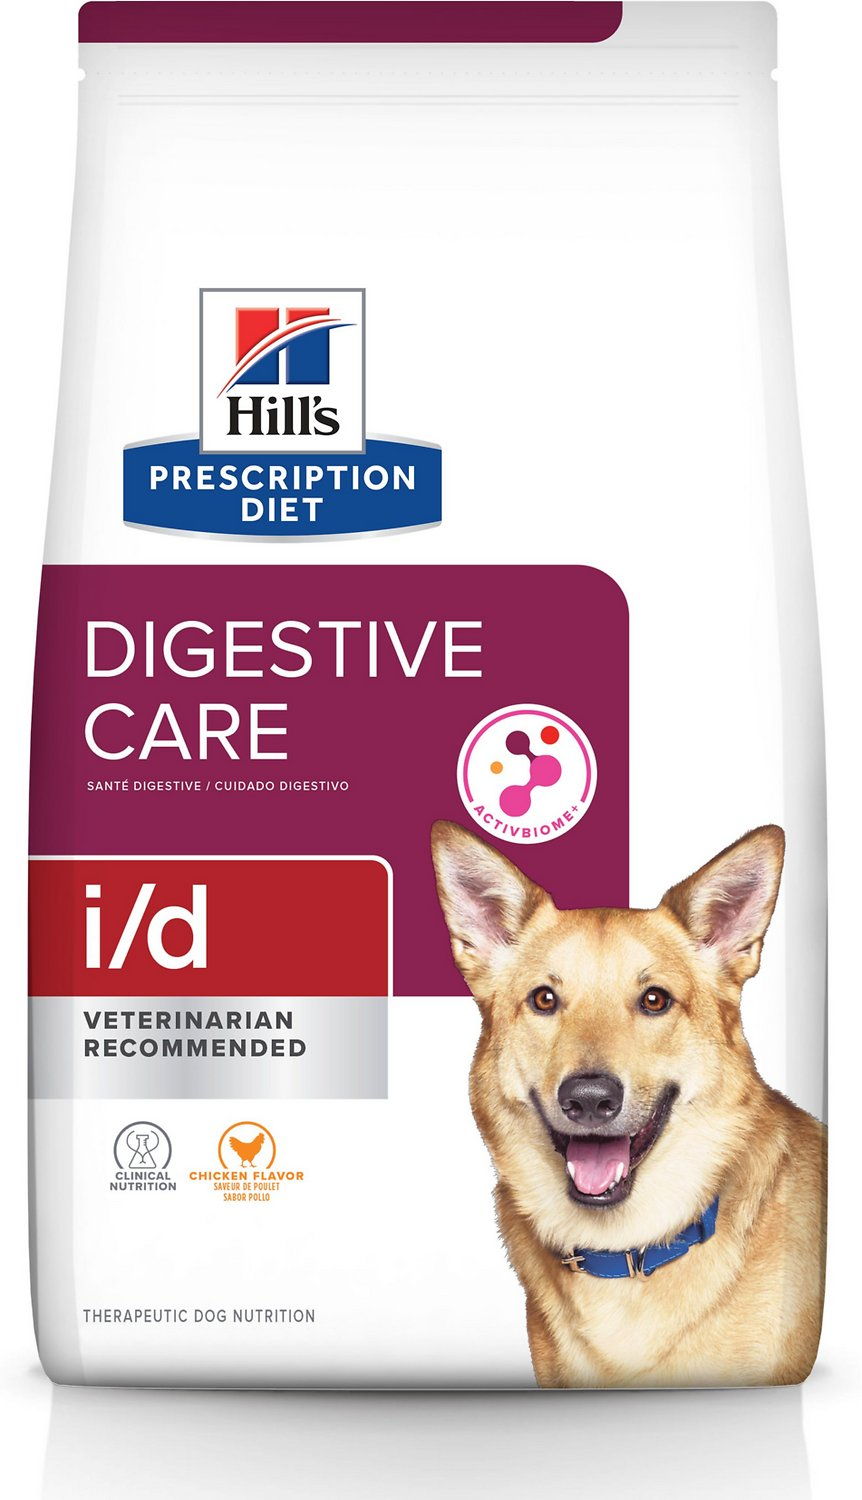 Hills Dry Dog Food Reviews